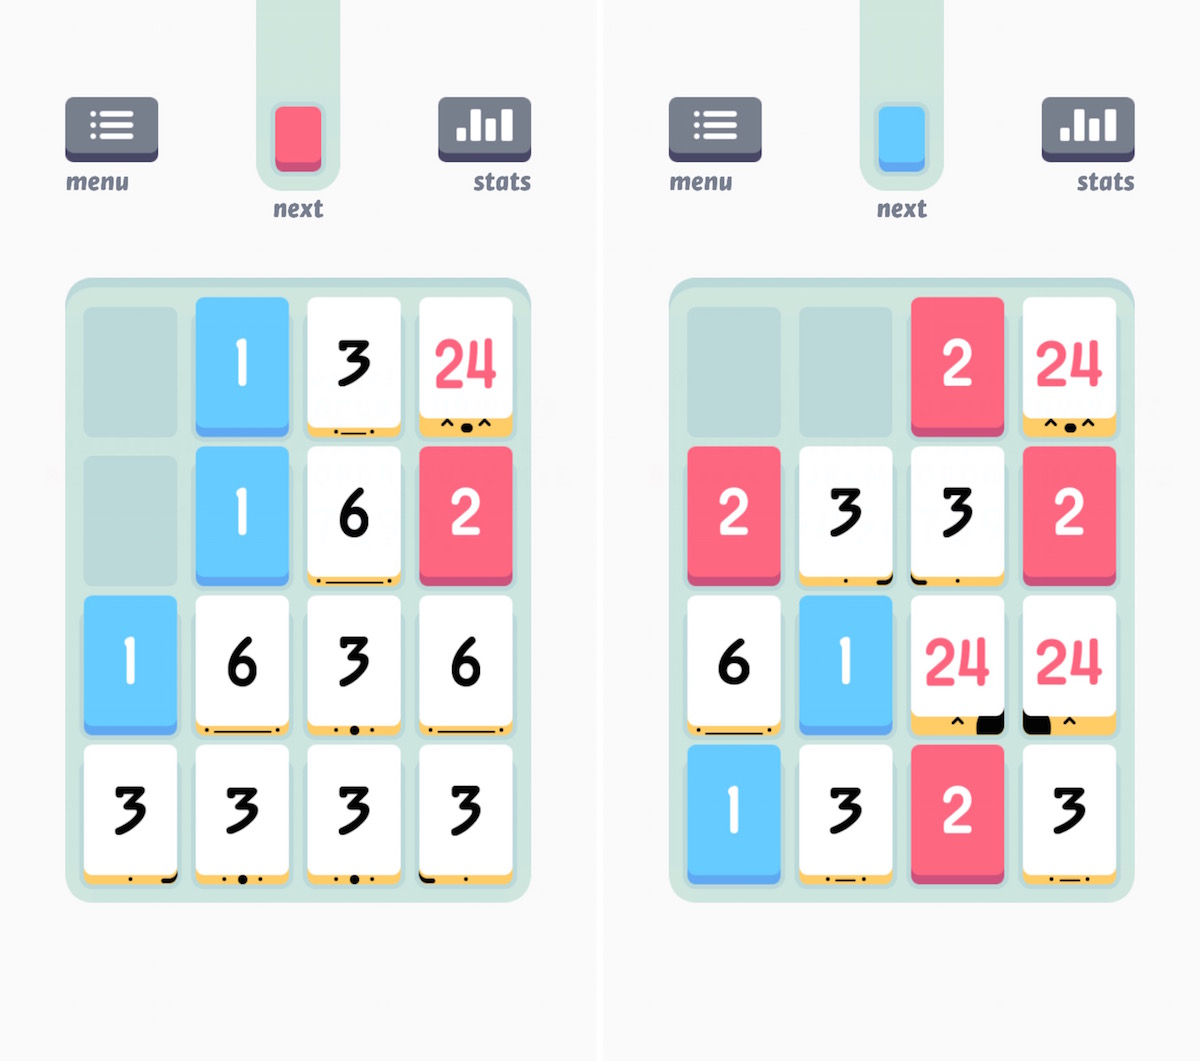 Threes best game